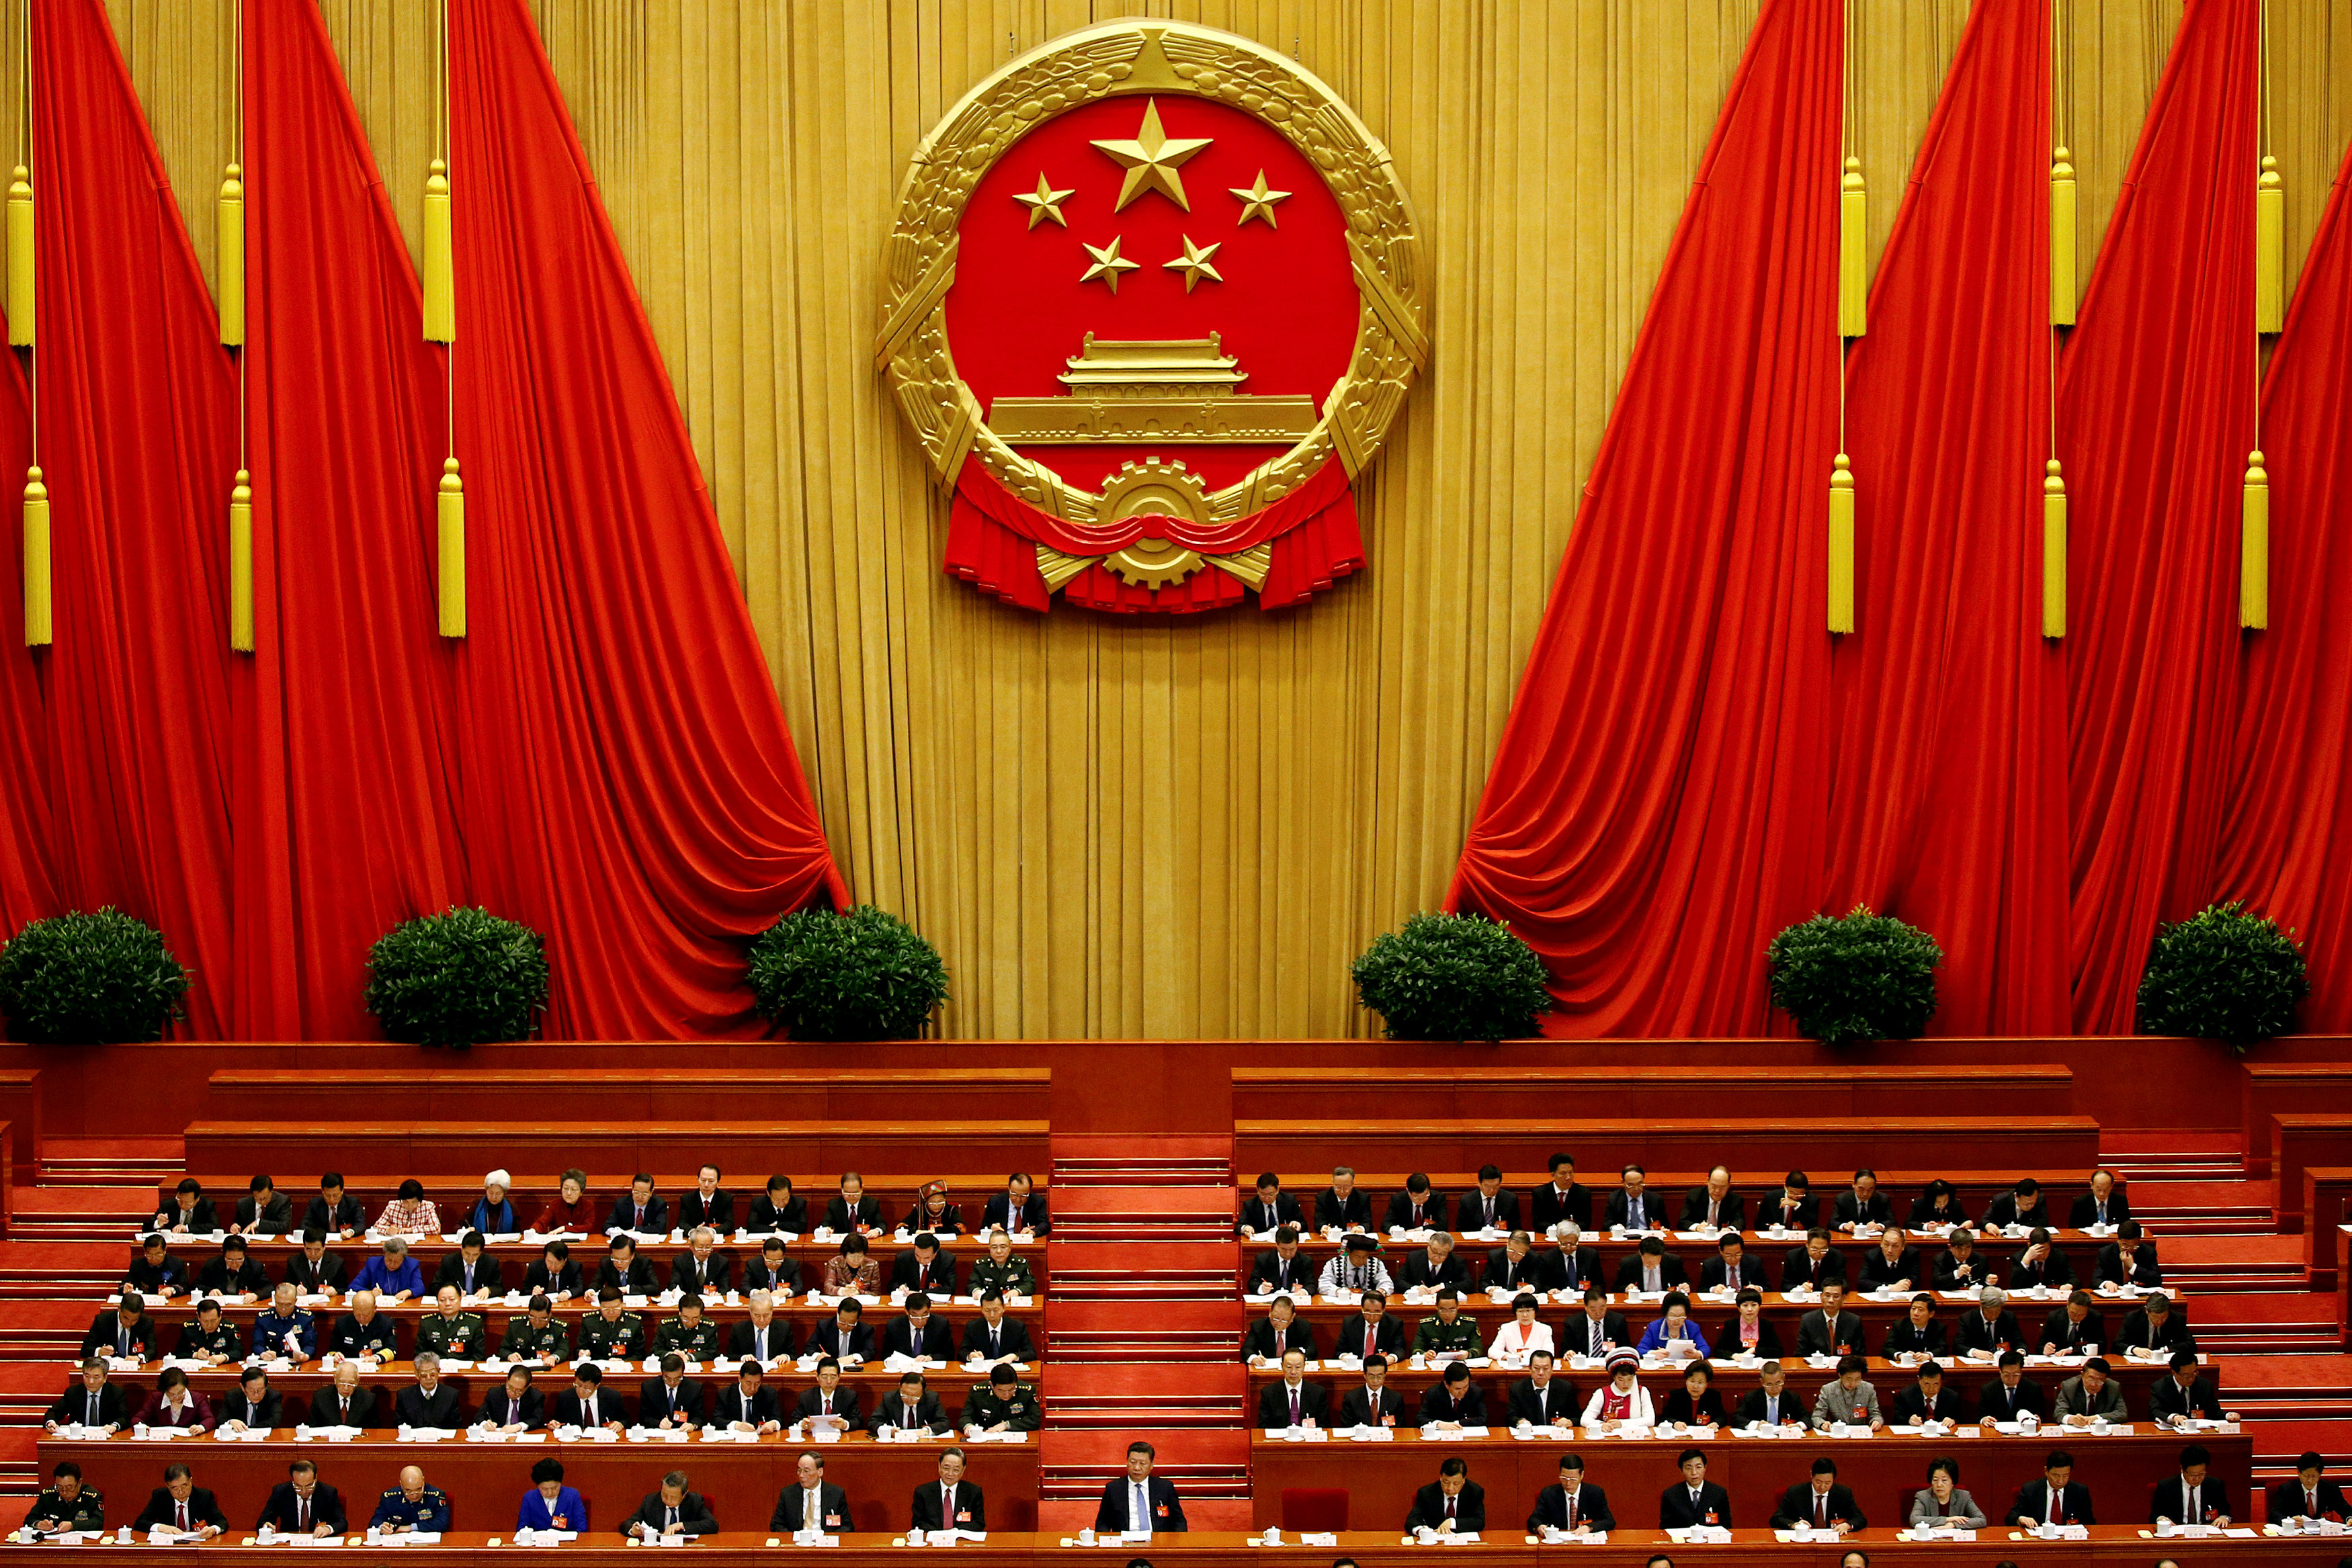 China's President Xi Jinping and other delegates listen as China's Premier Li Keqiang (not pictured) delivers a government work report during the opening session of the National People's Congress at the Great Hall of the People in Beijing. REUTERS/Damir Sagolj